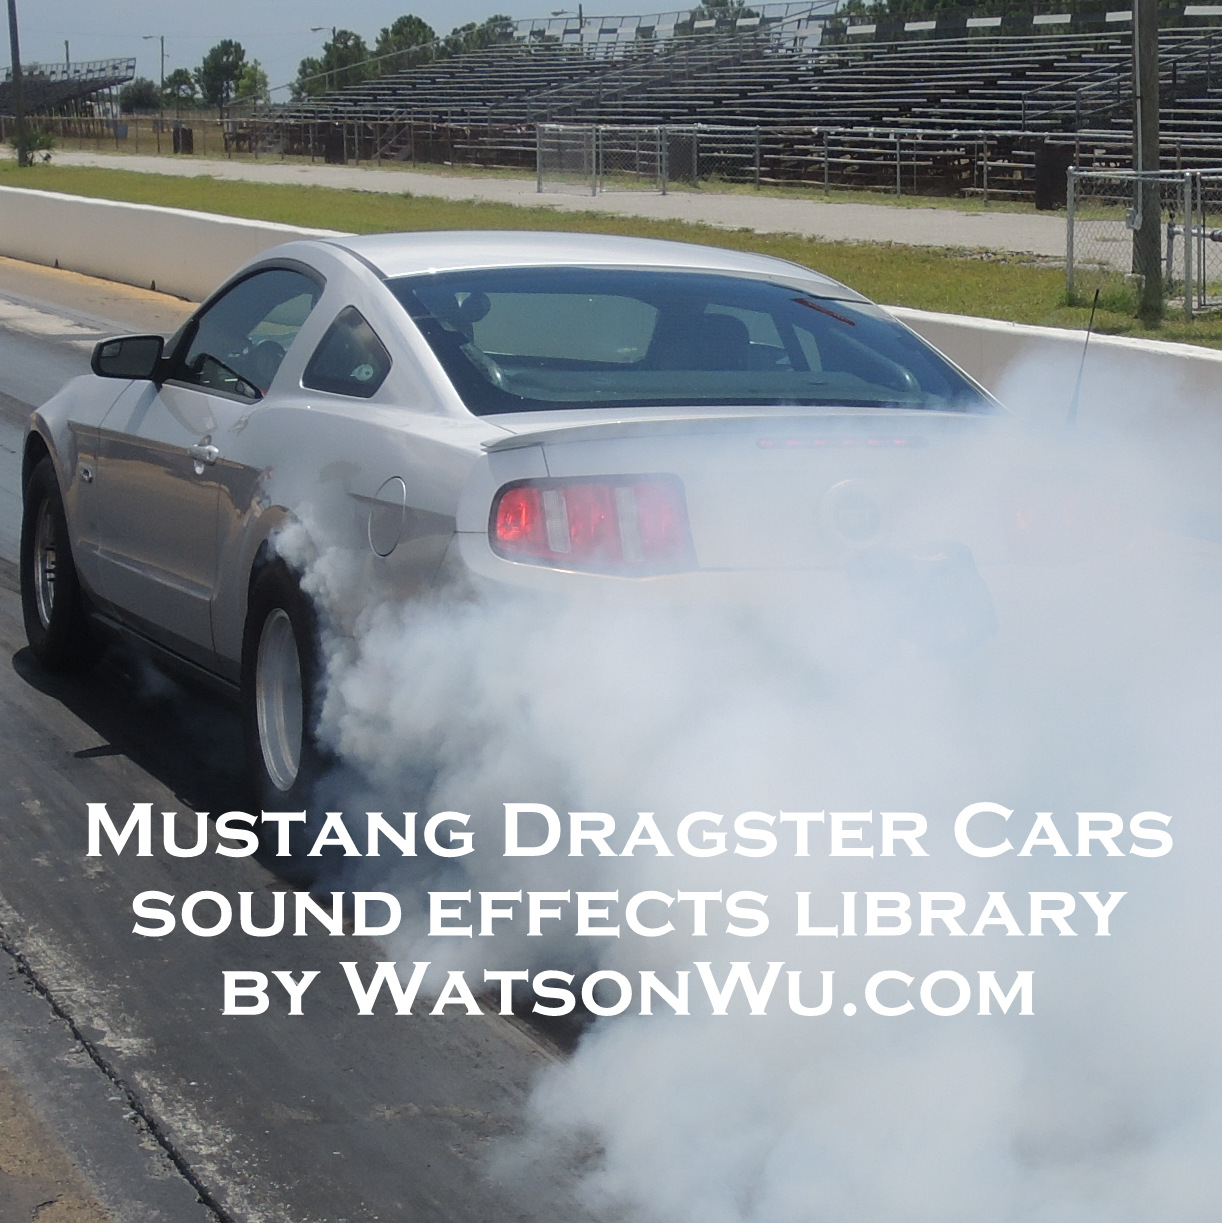 Car Sound Effects >> Mustang Dragster Cars Sound Effects Library Watson Wu Dot Com